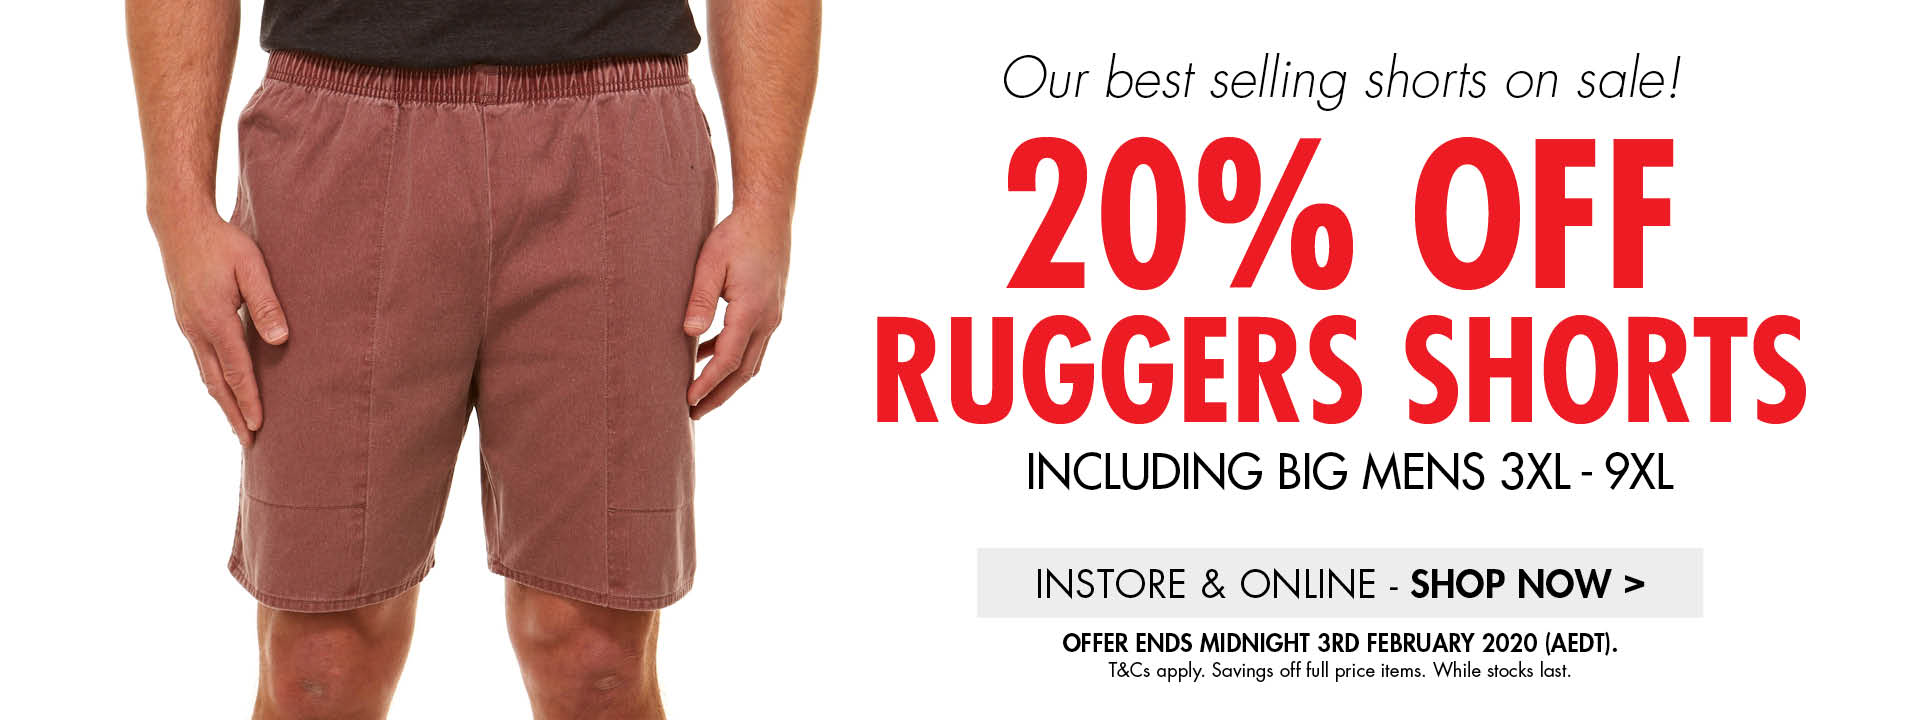 Ruggers Shorts 20% off